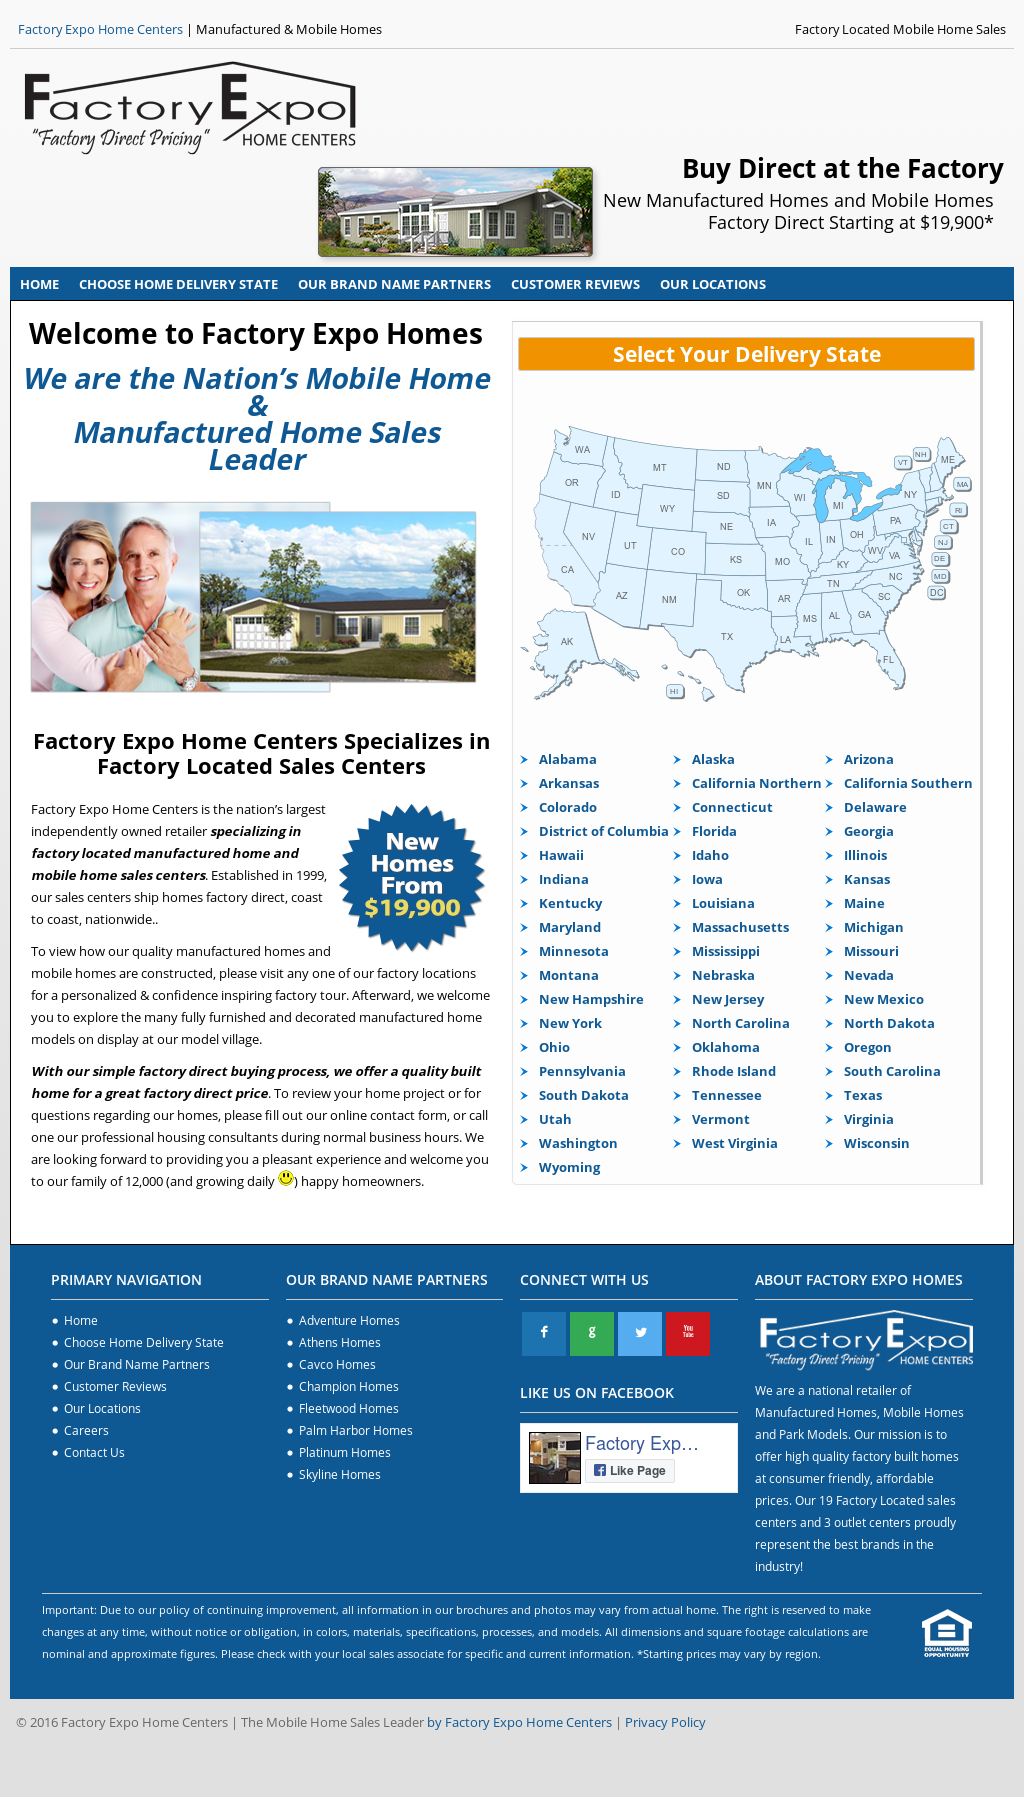 Factoryexpohomes Competitors, Revenue and Employees - Owler Company